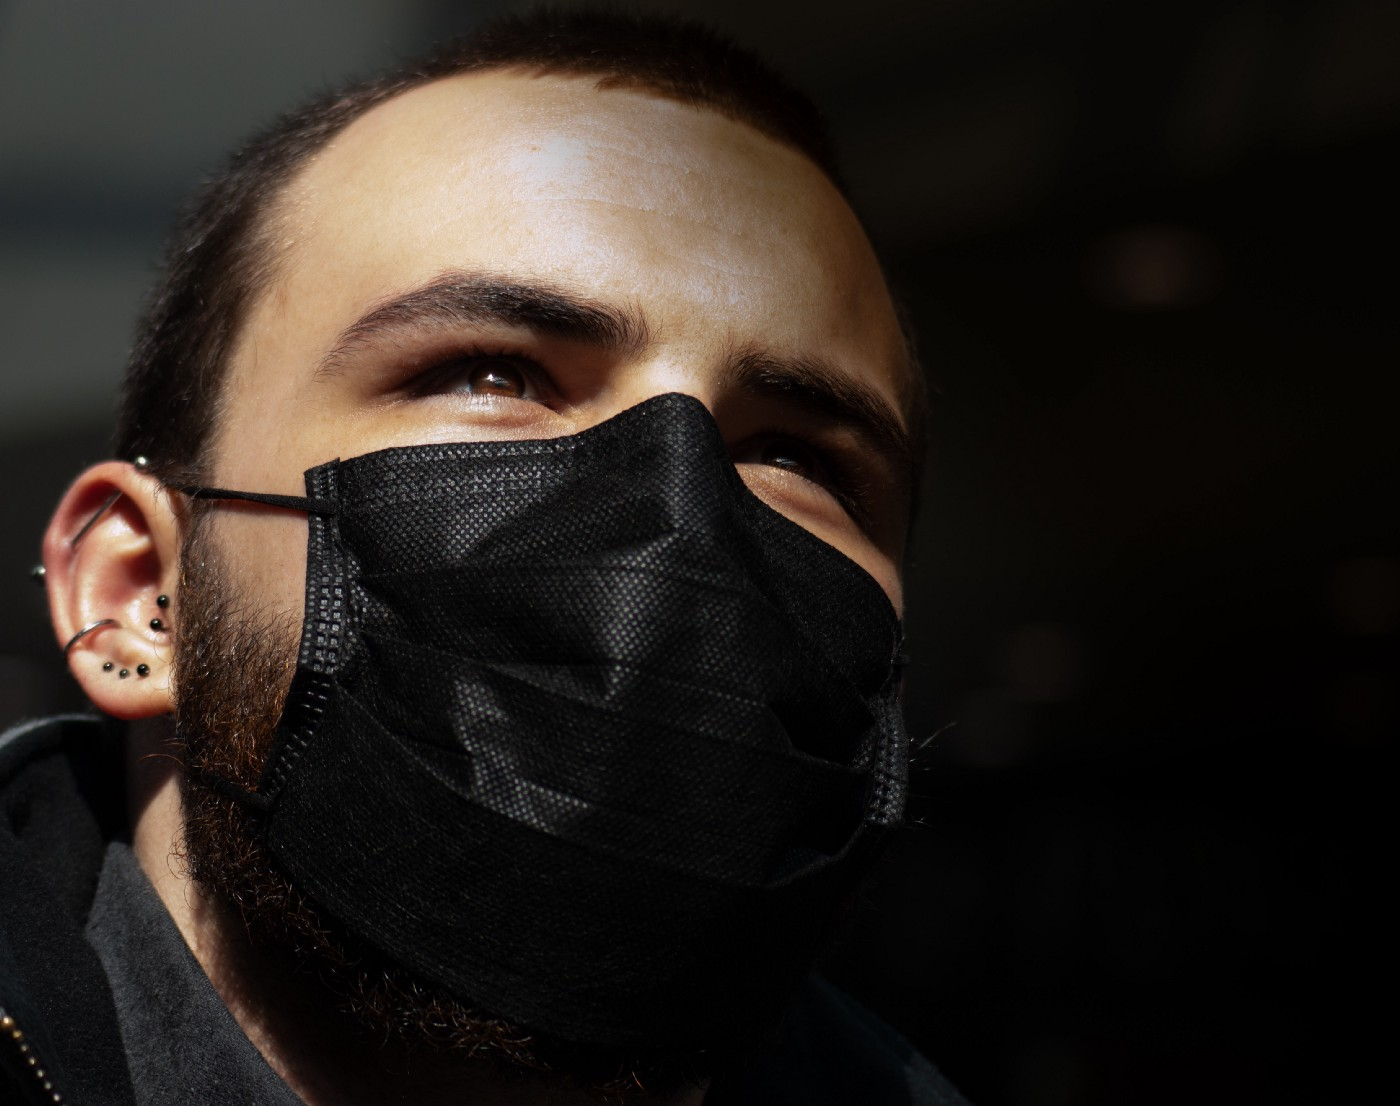 Black person wearing a black face mask